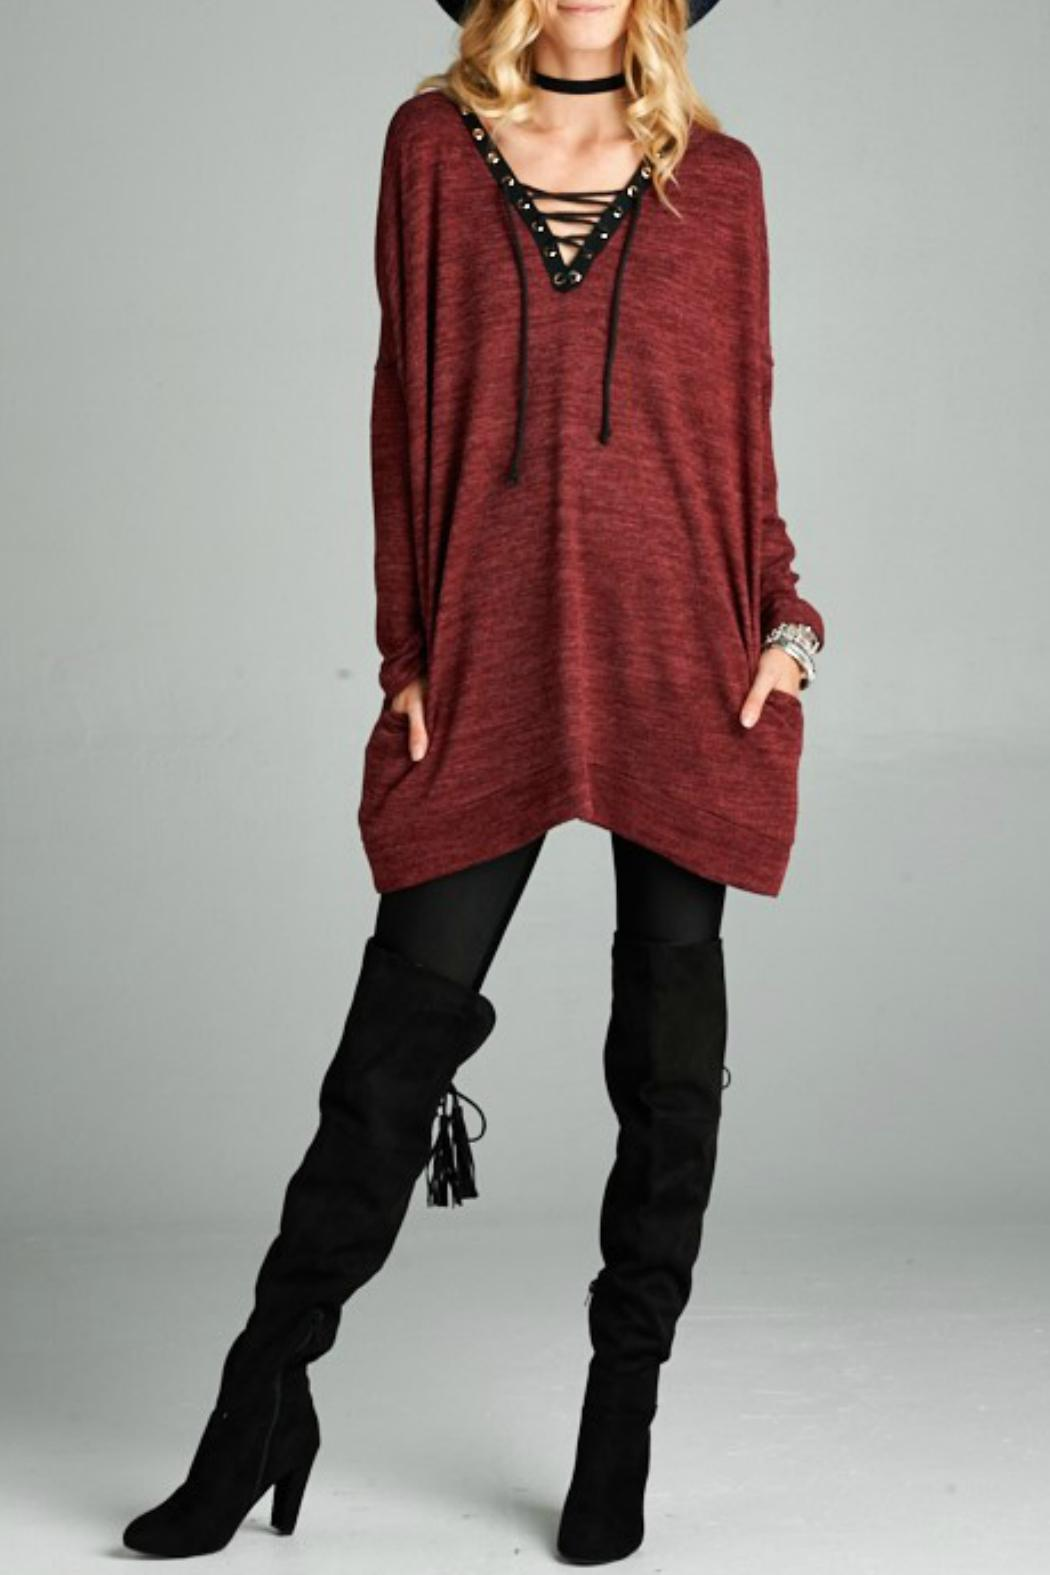 Goldspark Lace Up Tunic Sweater from Texas by POE and Arrows ...